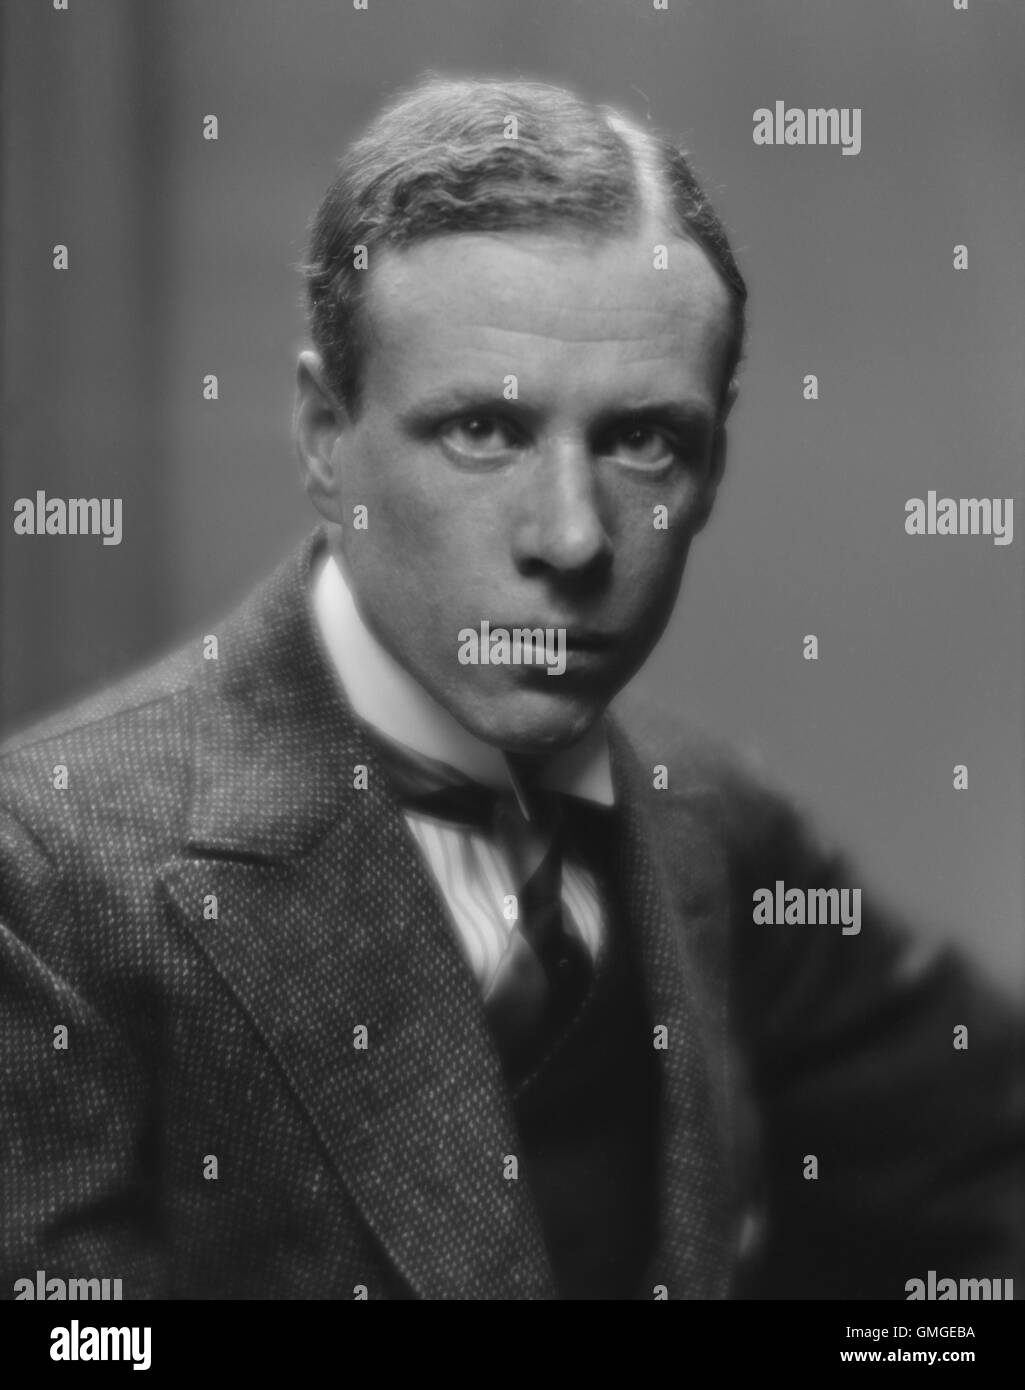 Lewis, Sinclair, whose realist novels of the 1920-30s were critical of American capitalism. Portrait by Arnold Genthe - Stock Image